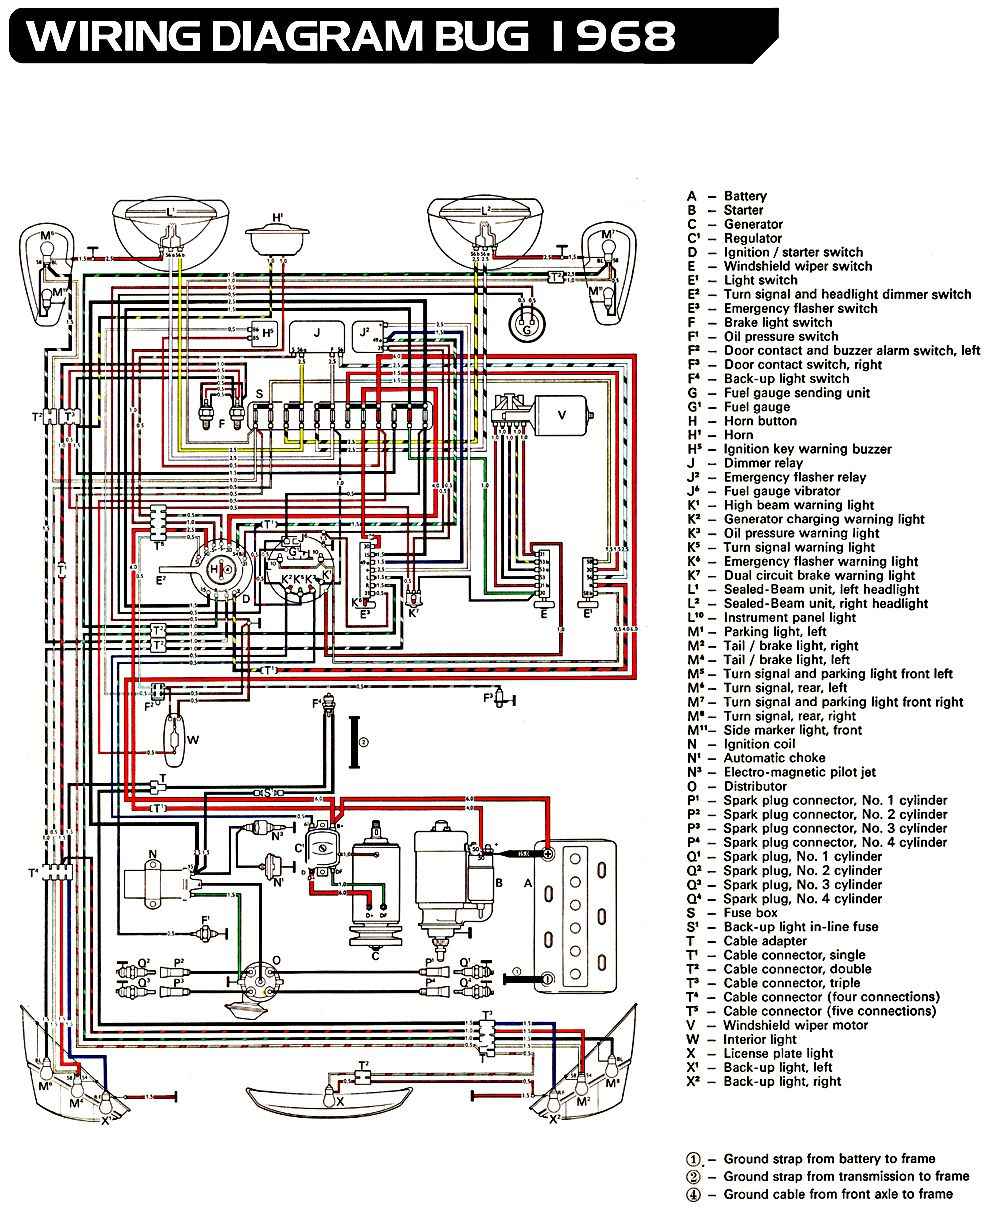 3a1908112d3826270ed5e3be362292bf vw bug ignition wiring diagram 73 vw wiring diagram free vw wiring diagrams at webbmarketing.co